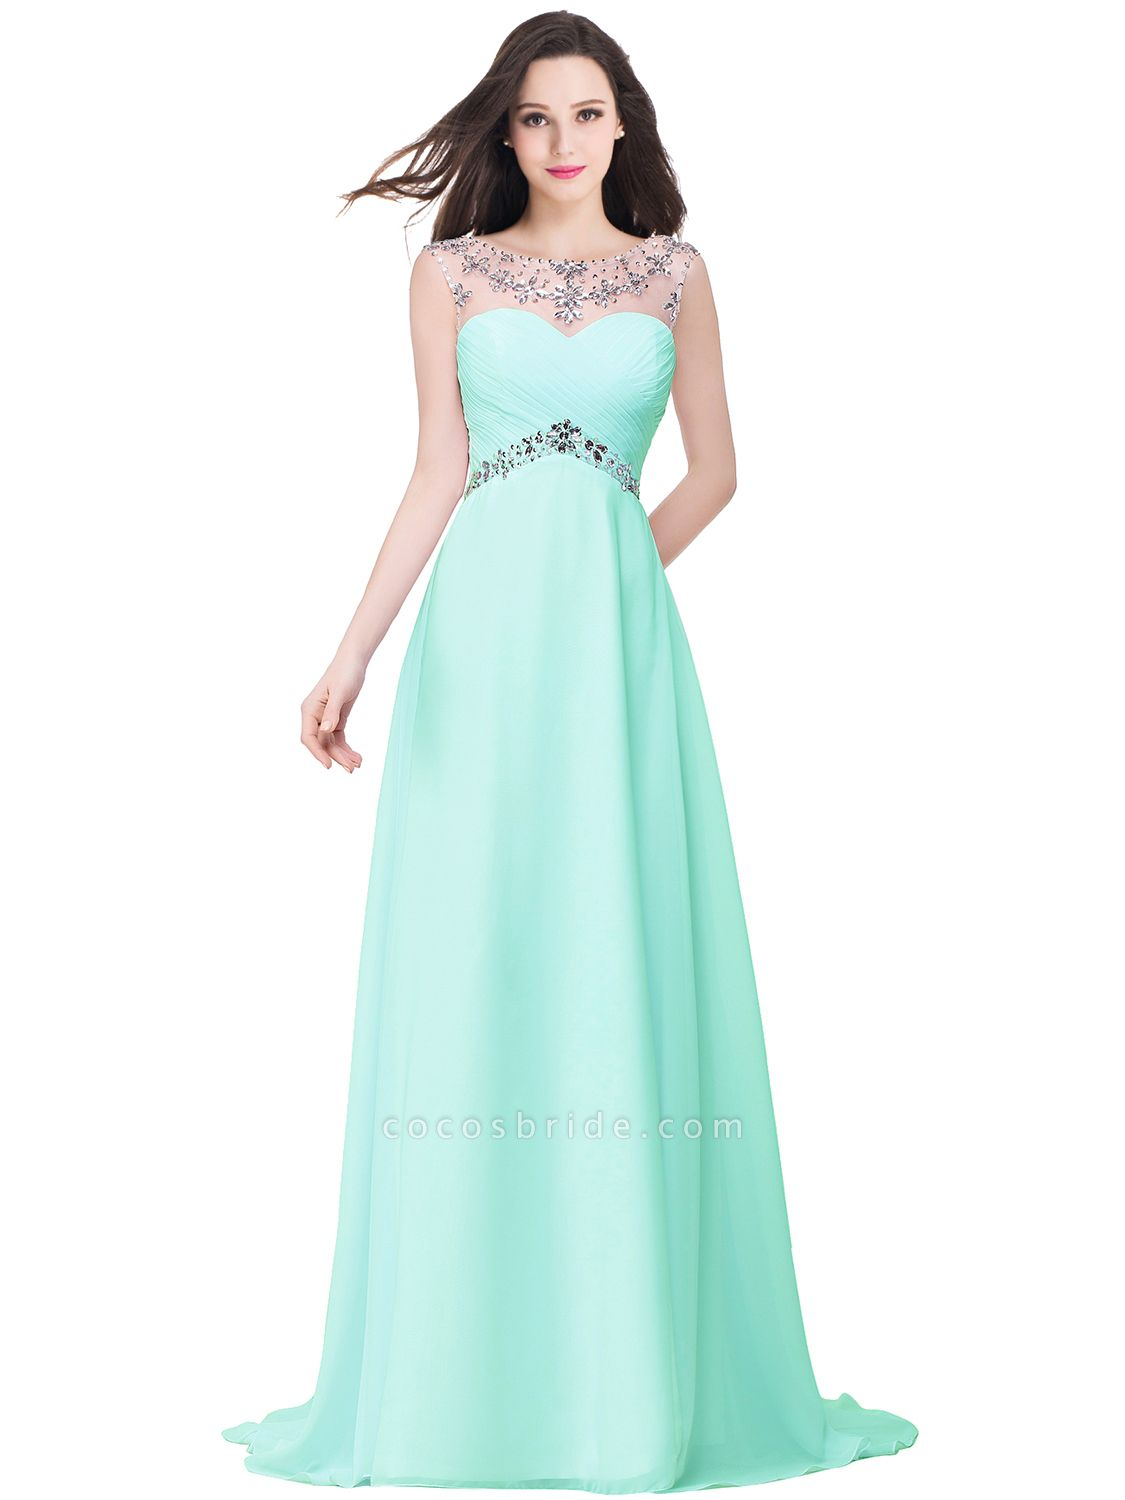 A-line Sweetheart Crystal Chiffon Evening Dress